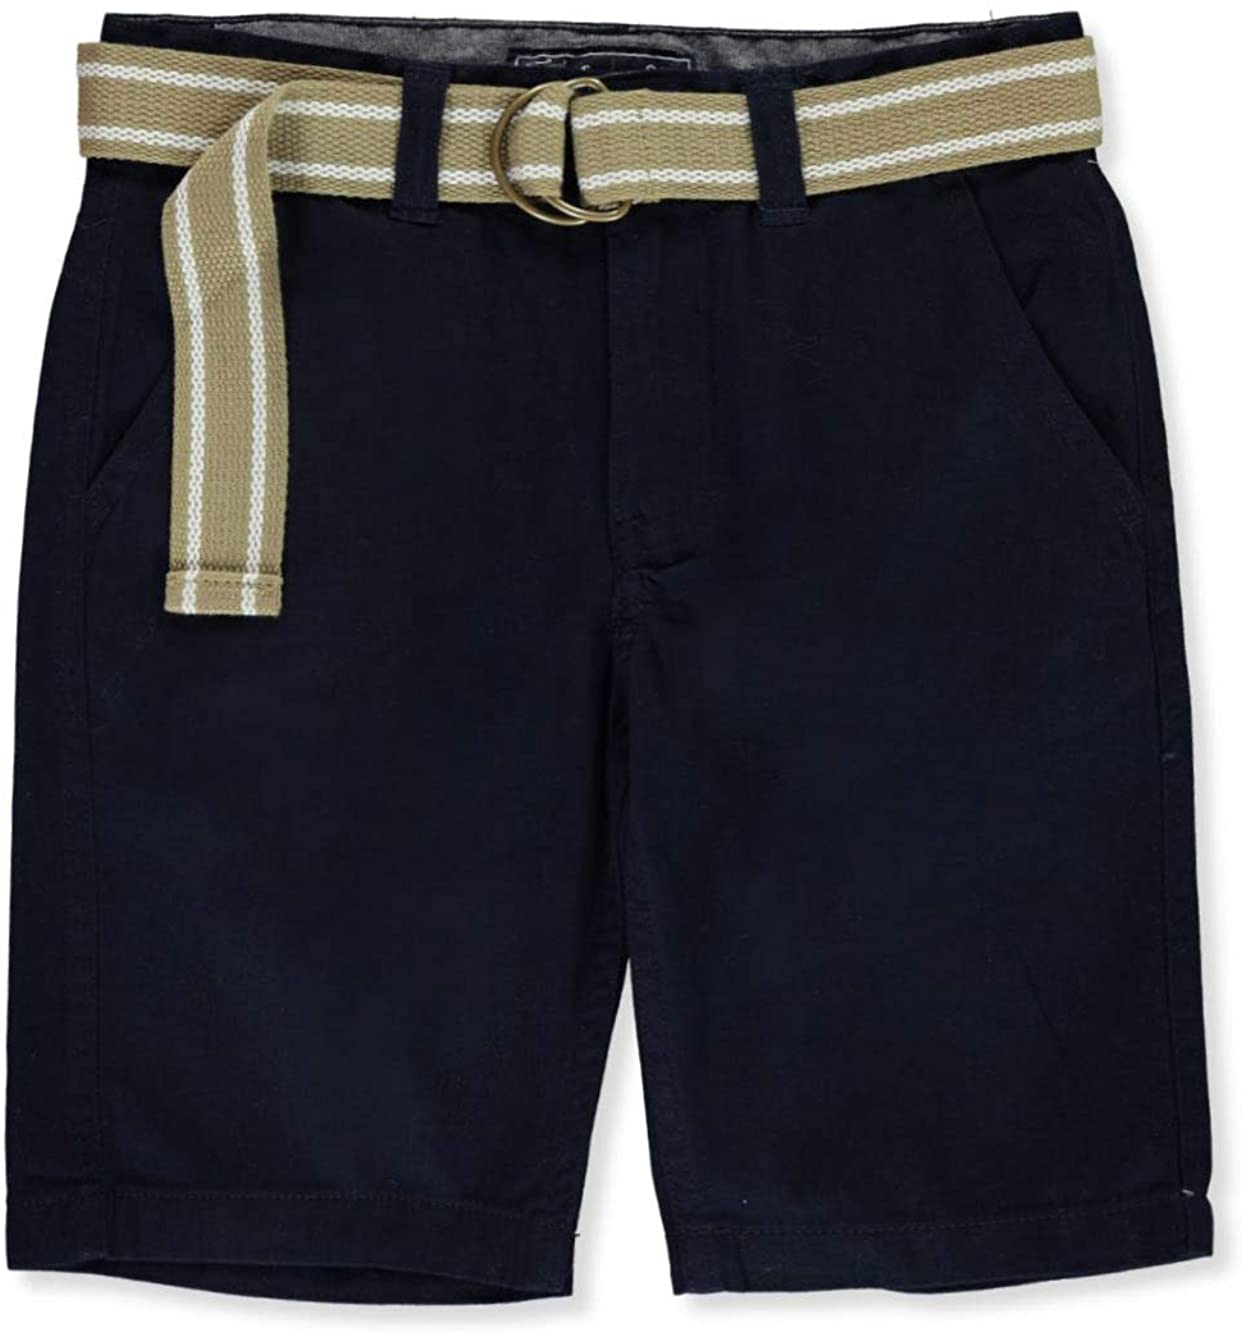 The Original J.A.C.H.S. Co. Little Boys' Twill Shorts - Navy, 4